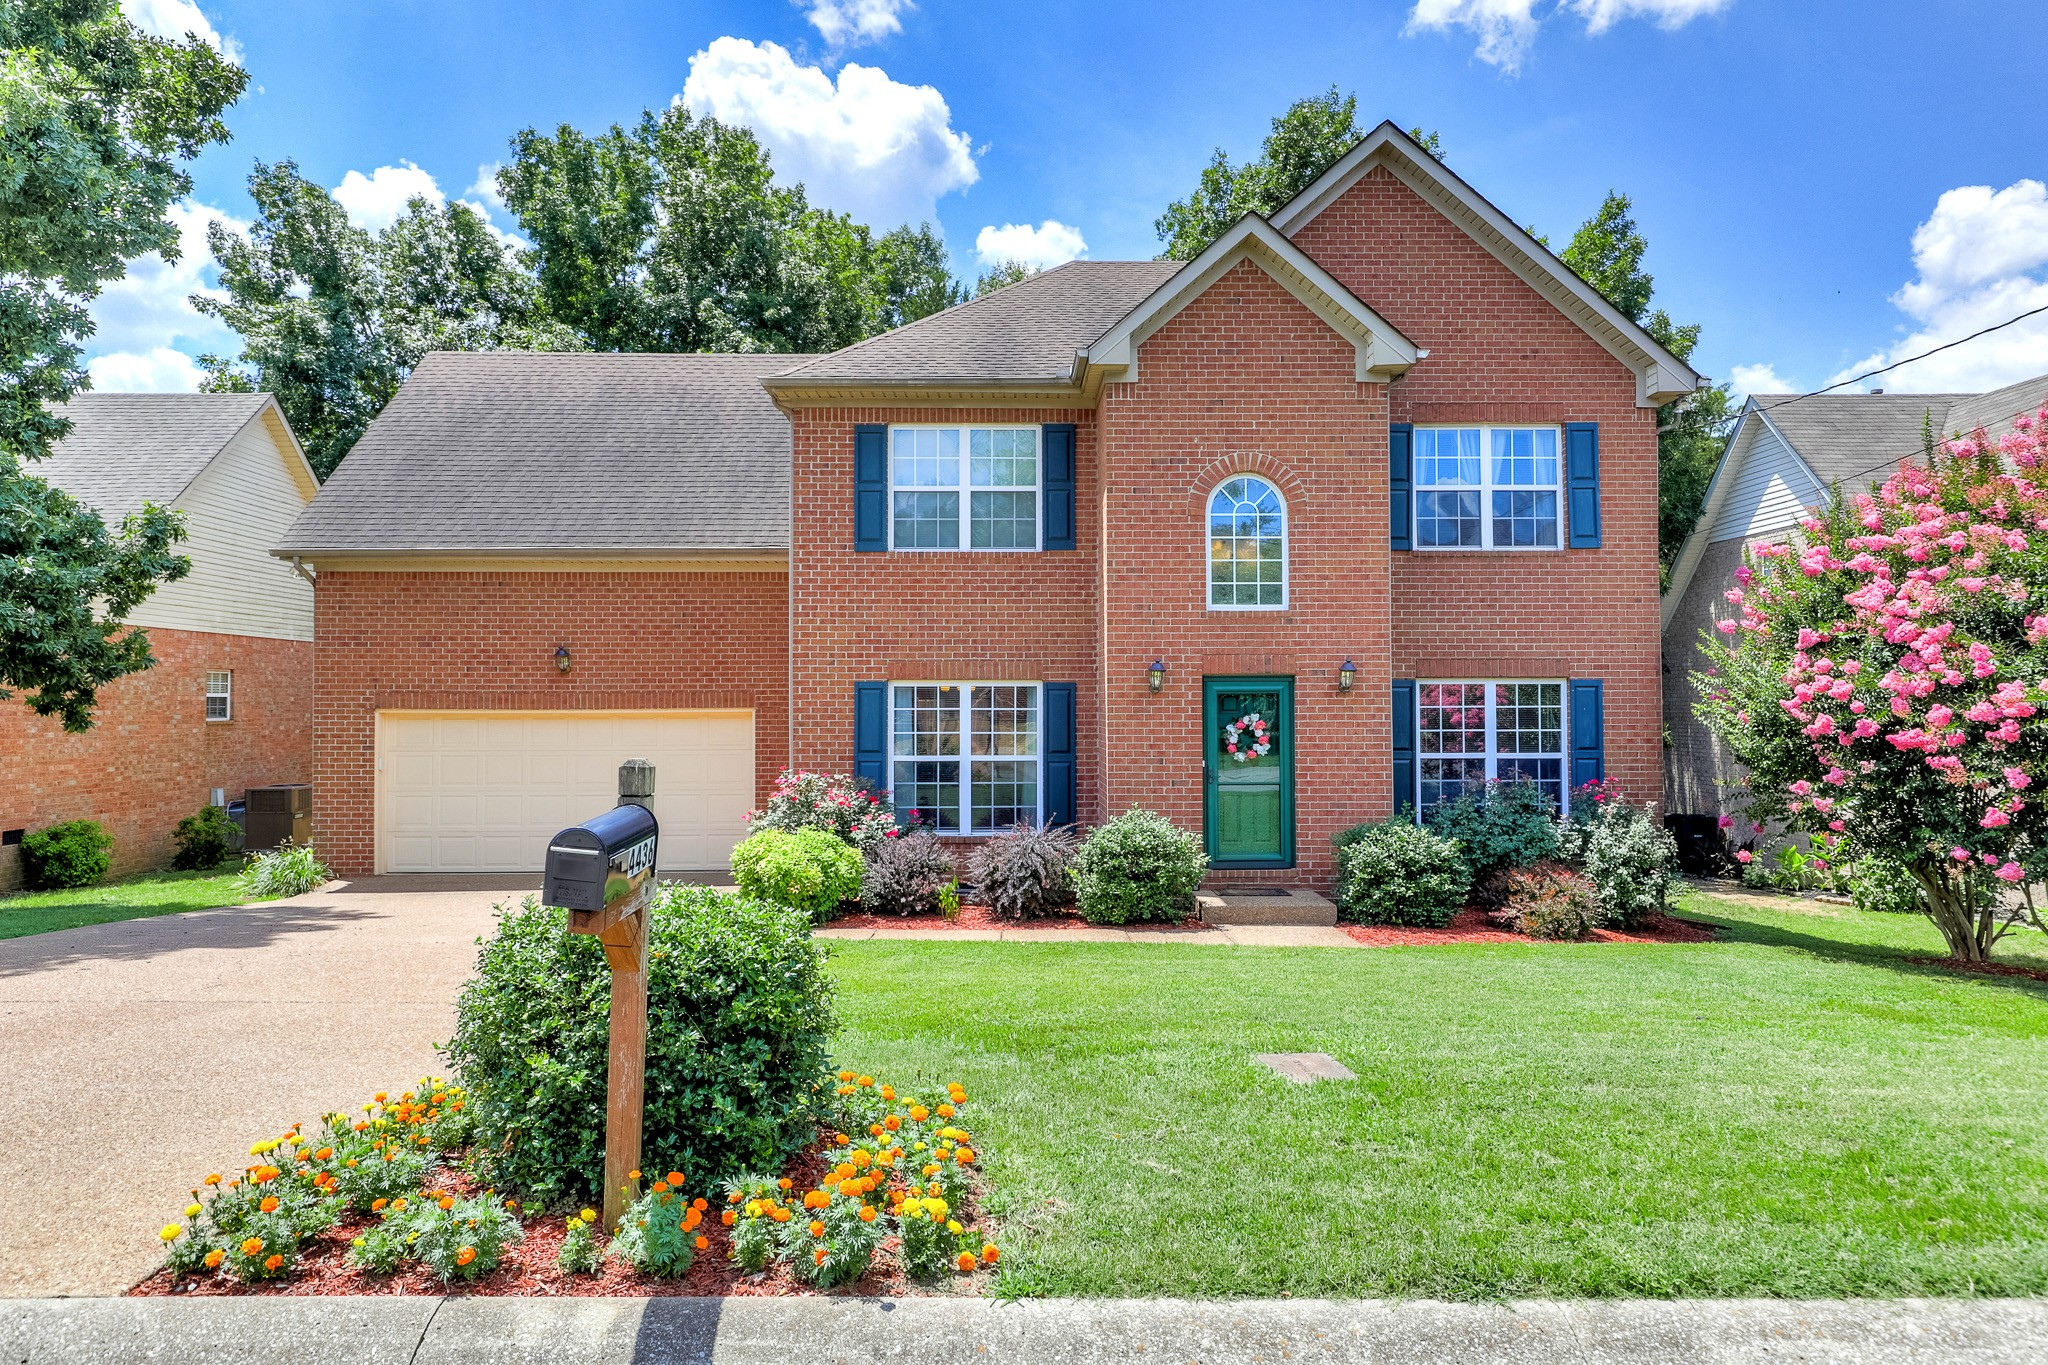 4436 Benchmark Dr Property Photo - Antioch, TN real estate listing